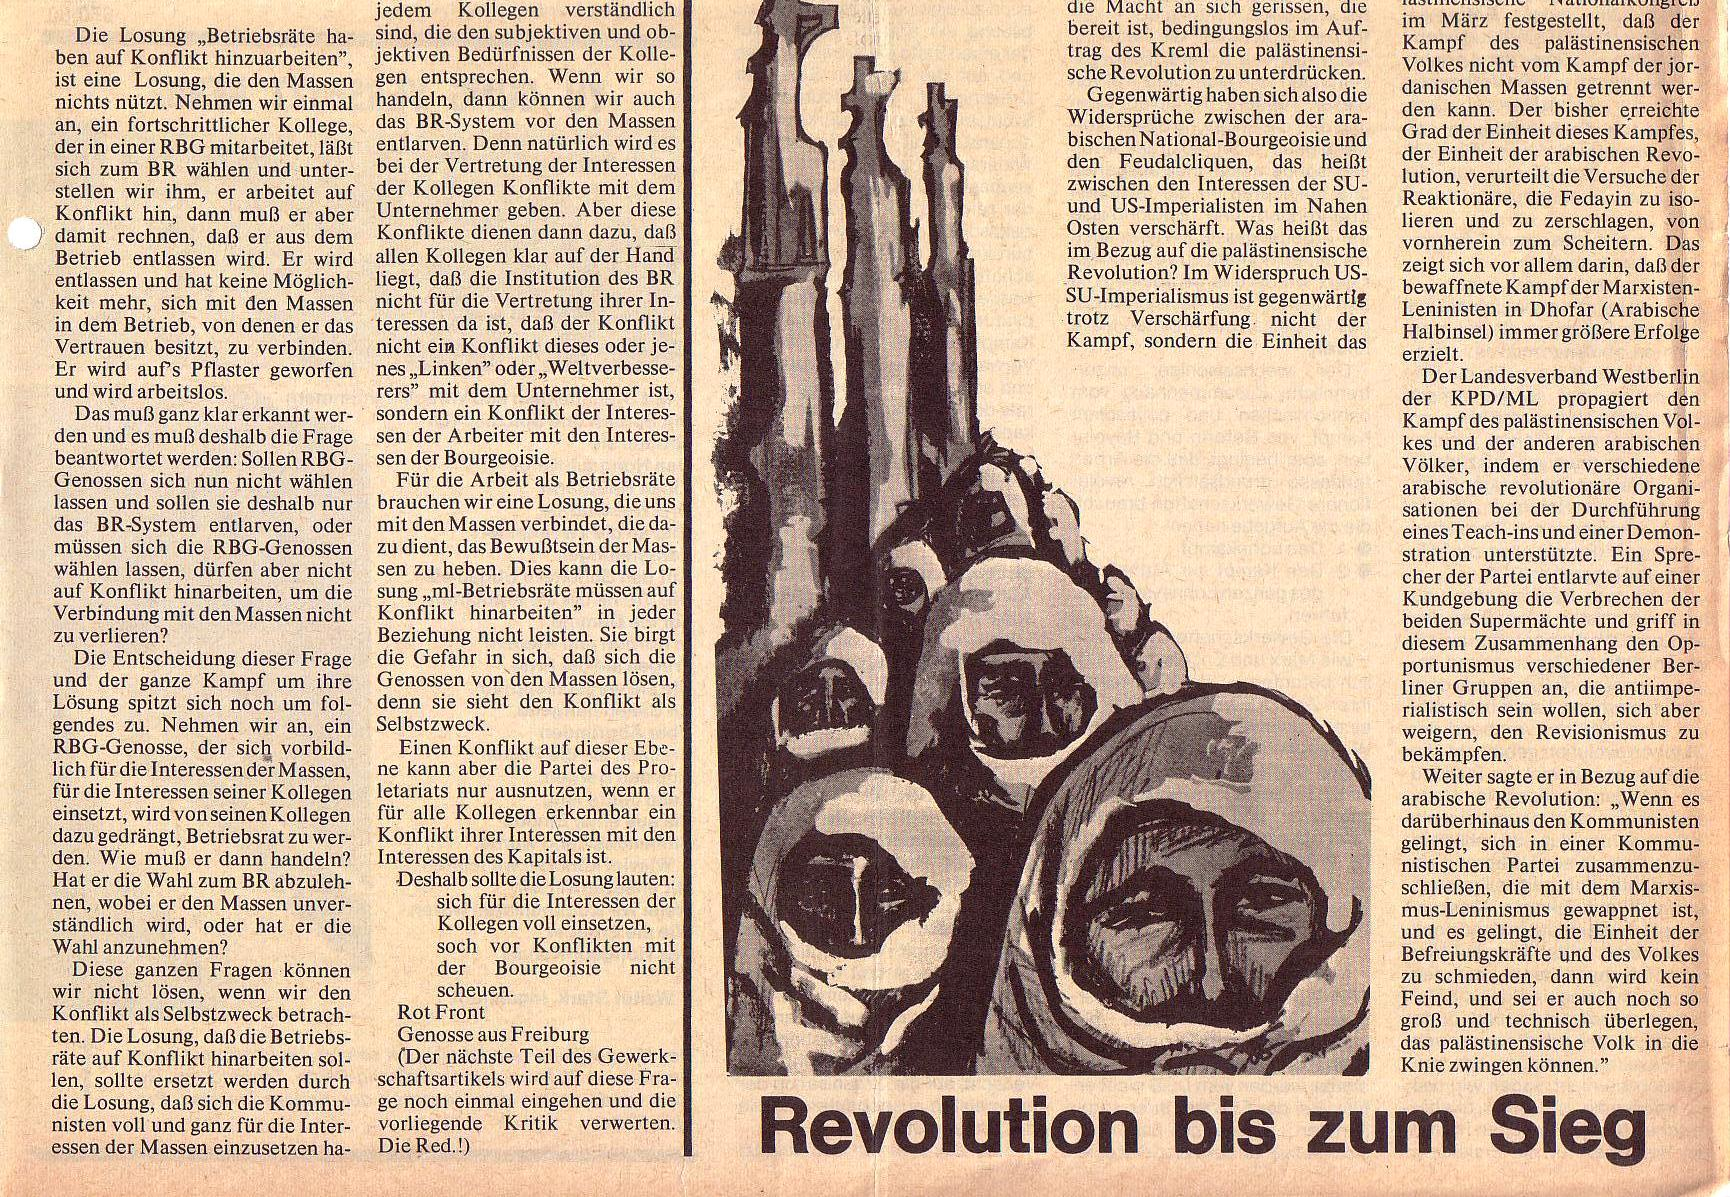 Roter Morgen, 5. Jg., August 1971, Nr. 8, Seite 5b